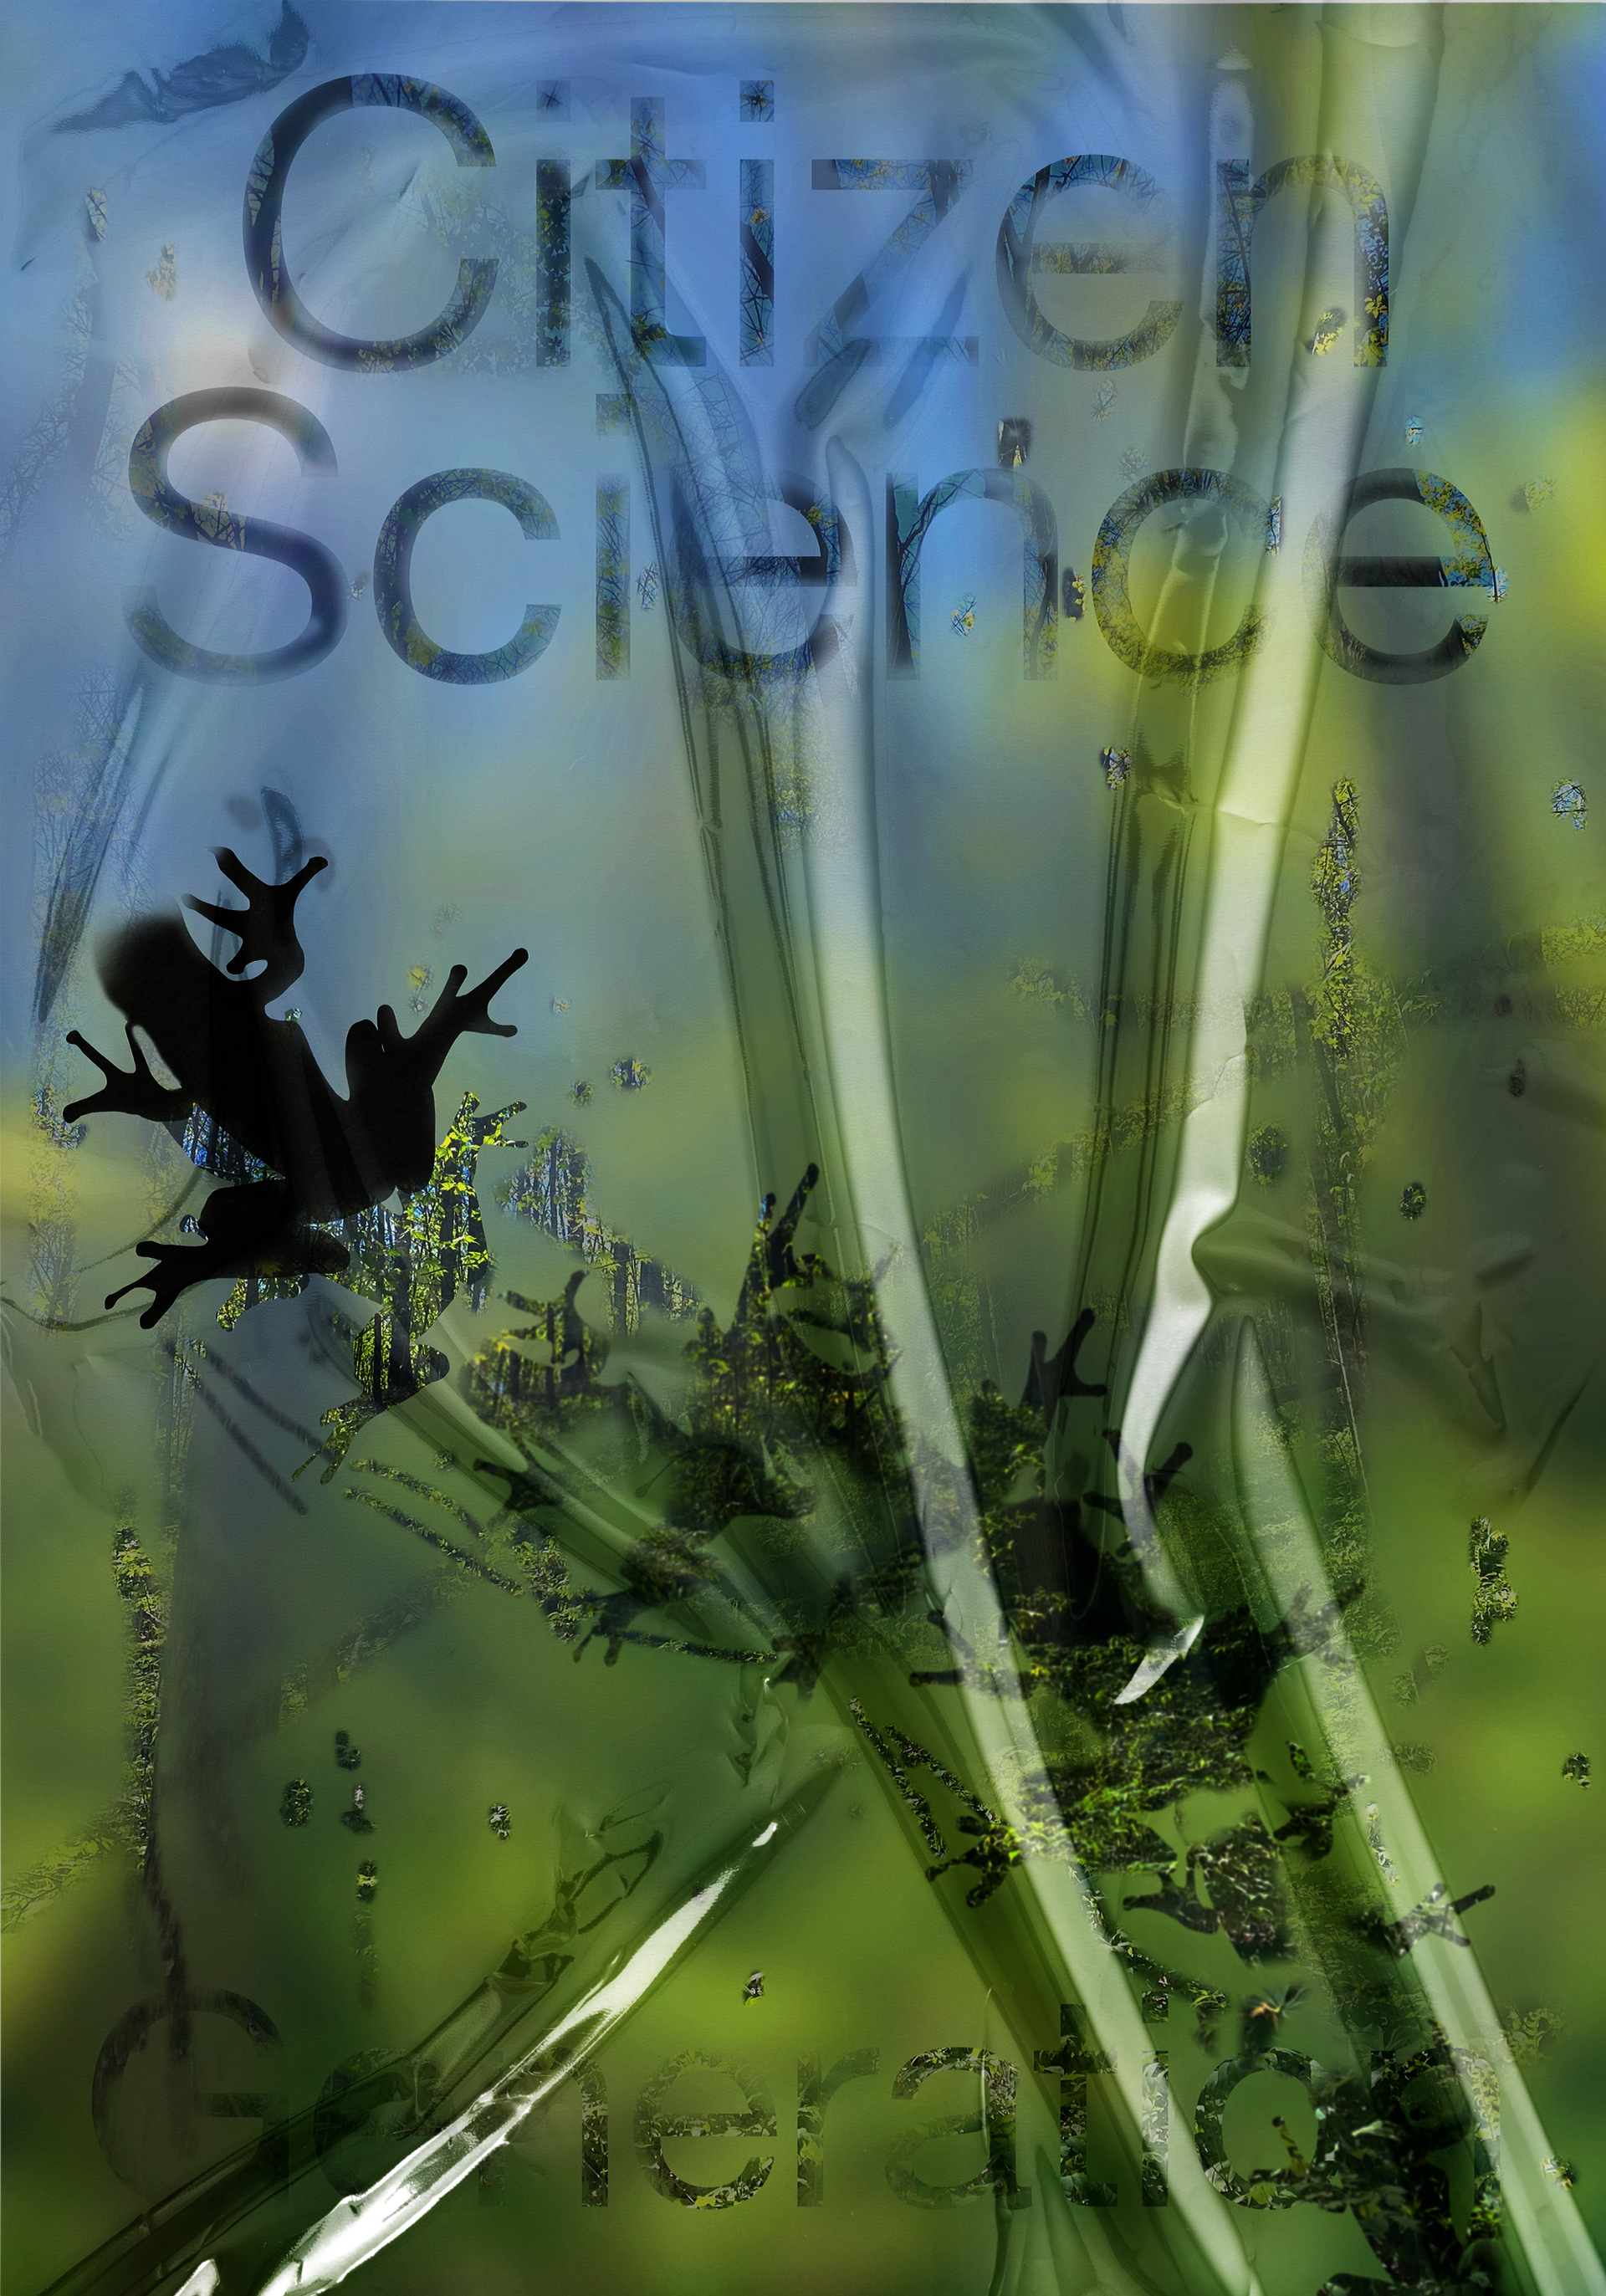 Poster with the text 'Citizen Science Generation'